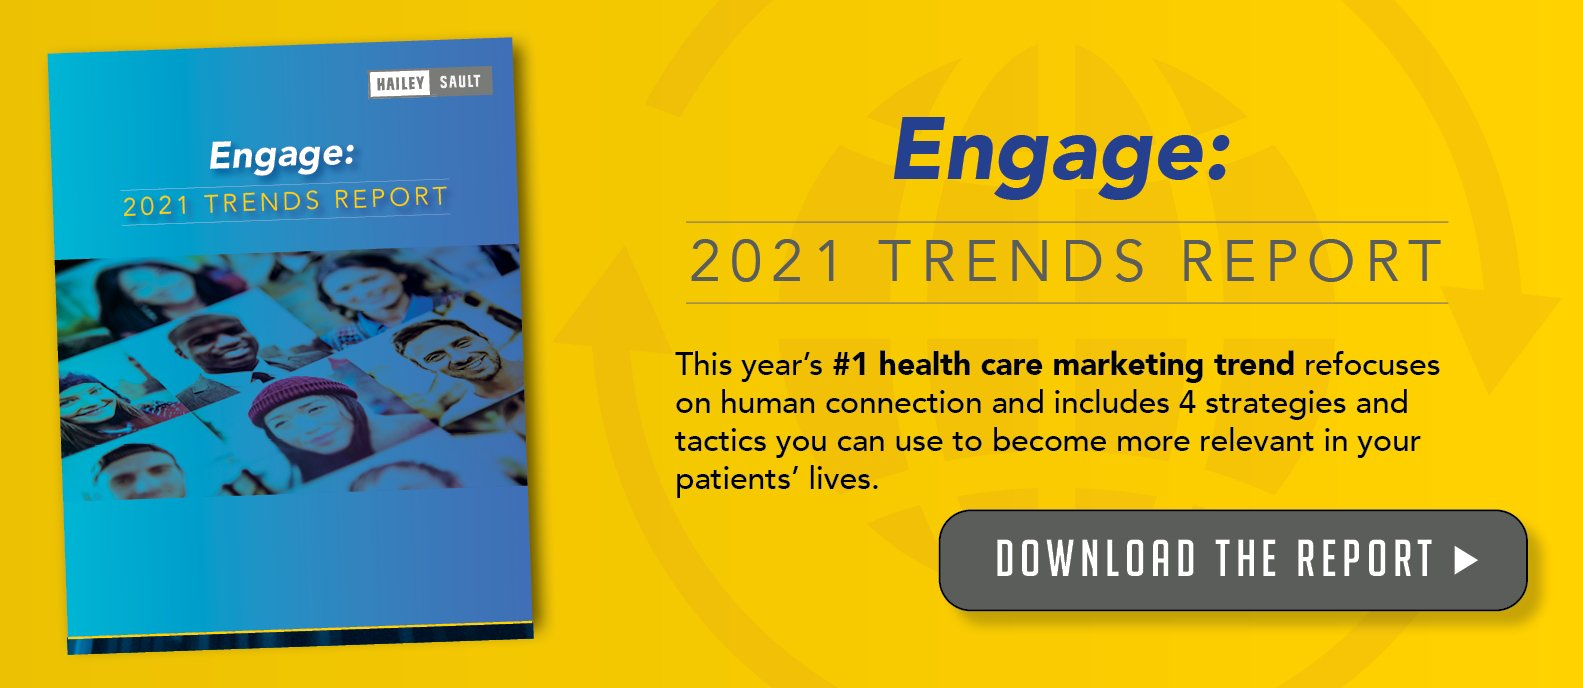 Download the 2021 Trends Report